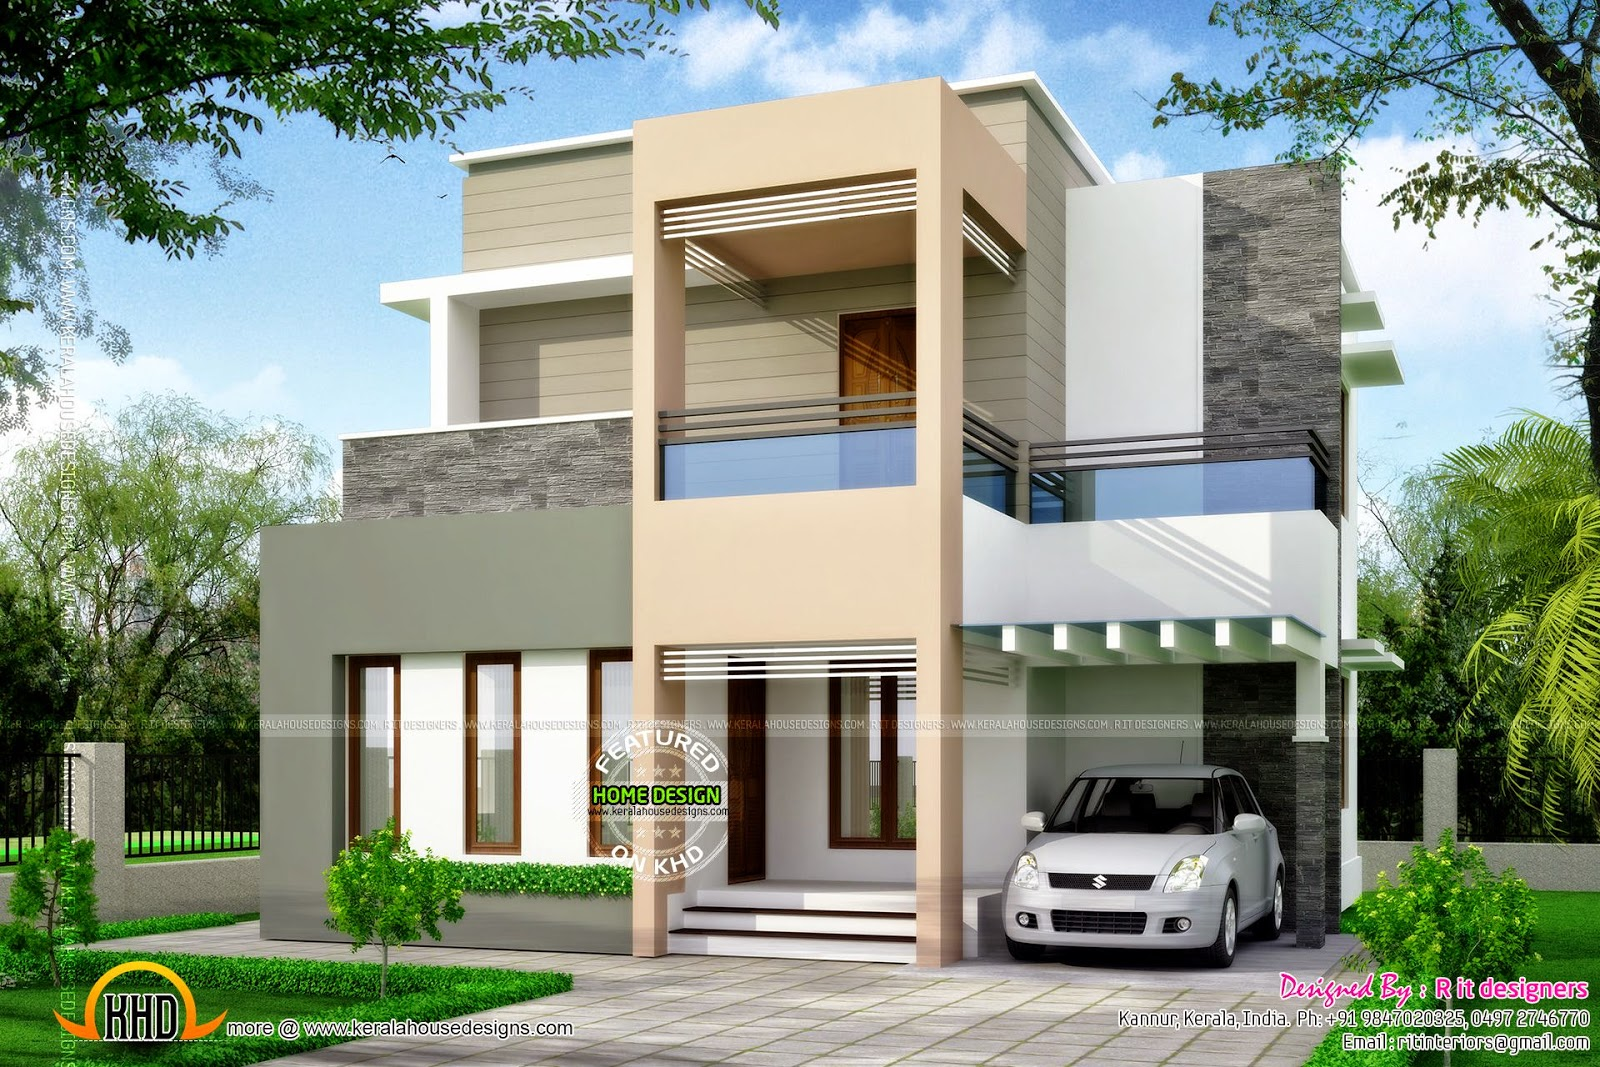 Garage Apartment Floor Plans December 2014 Kerala Home Design And Floor Plans